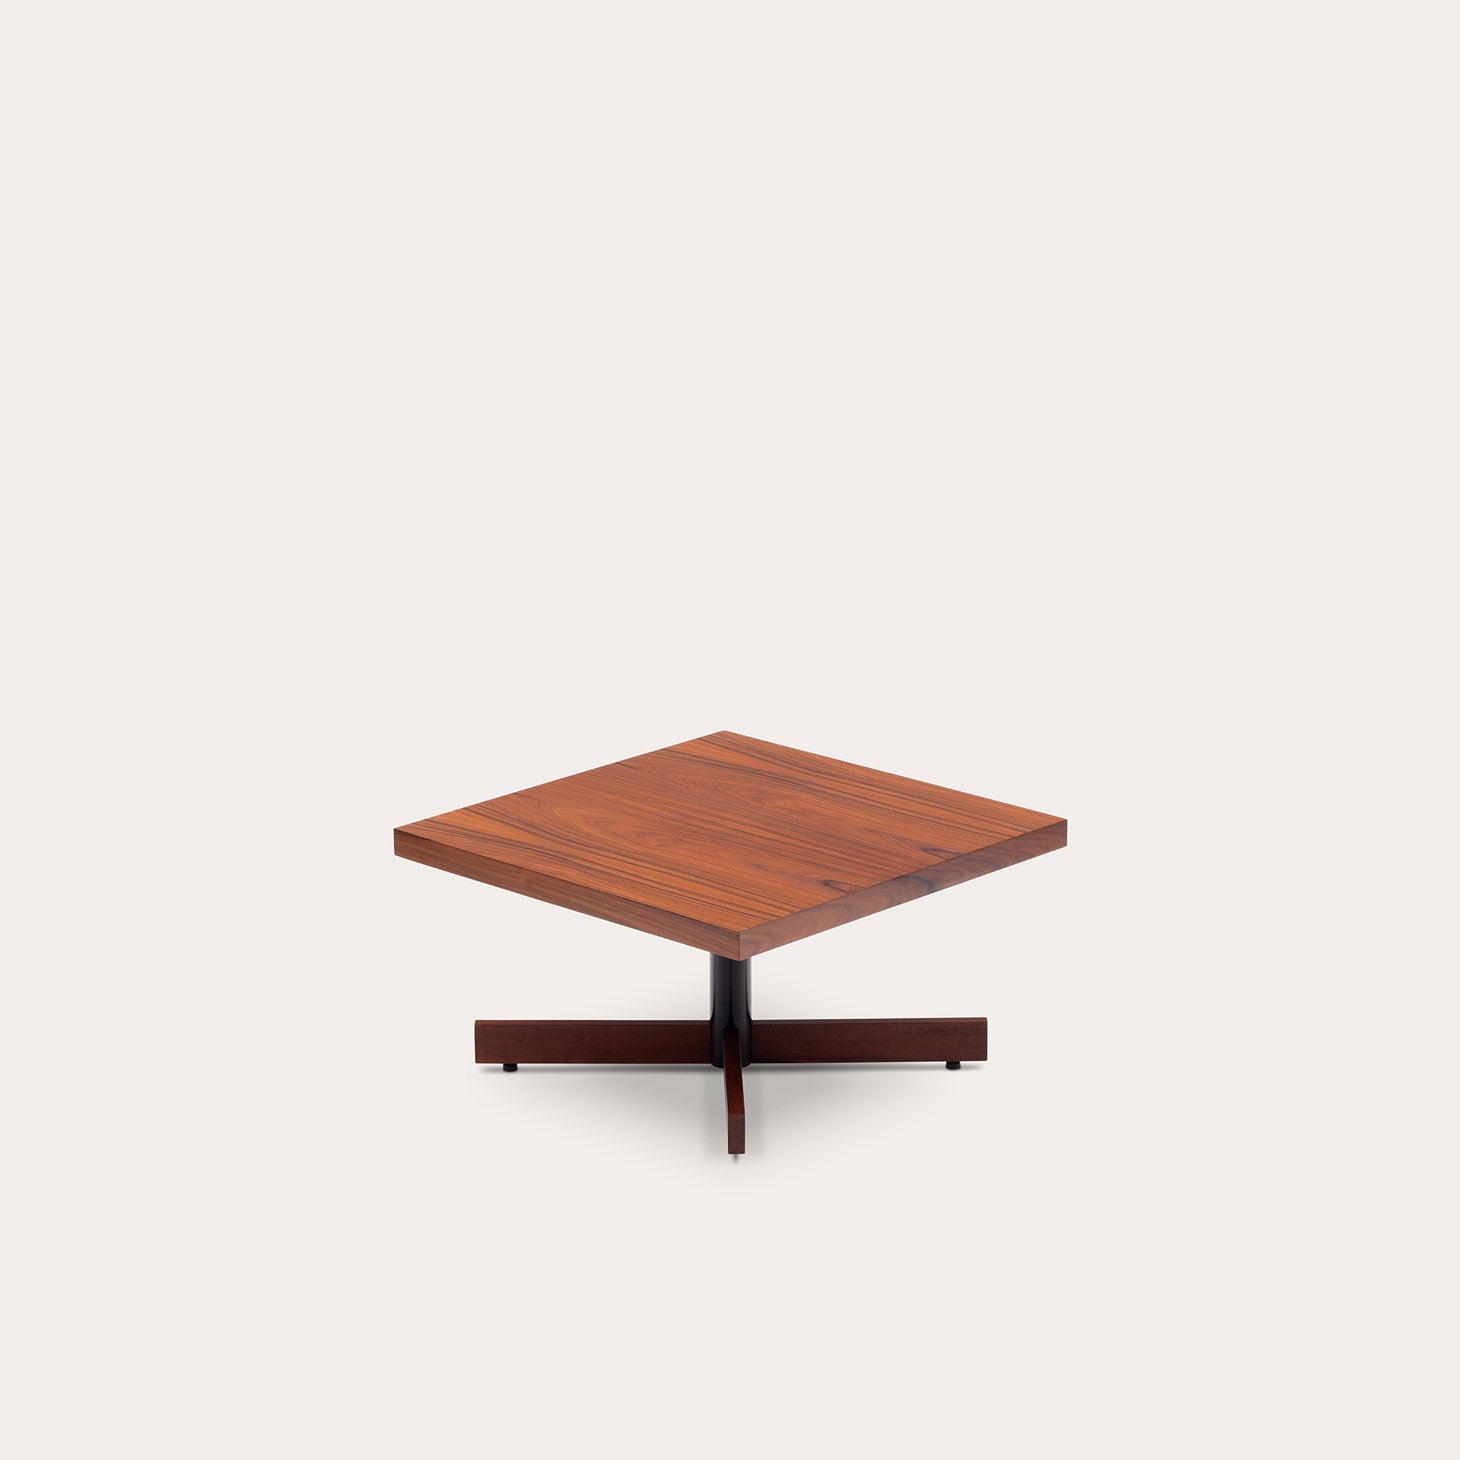 Chanceler Tables Jorge Zalszupin Designer Furniture Sku: 003-230-10113